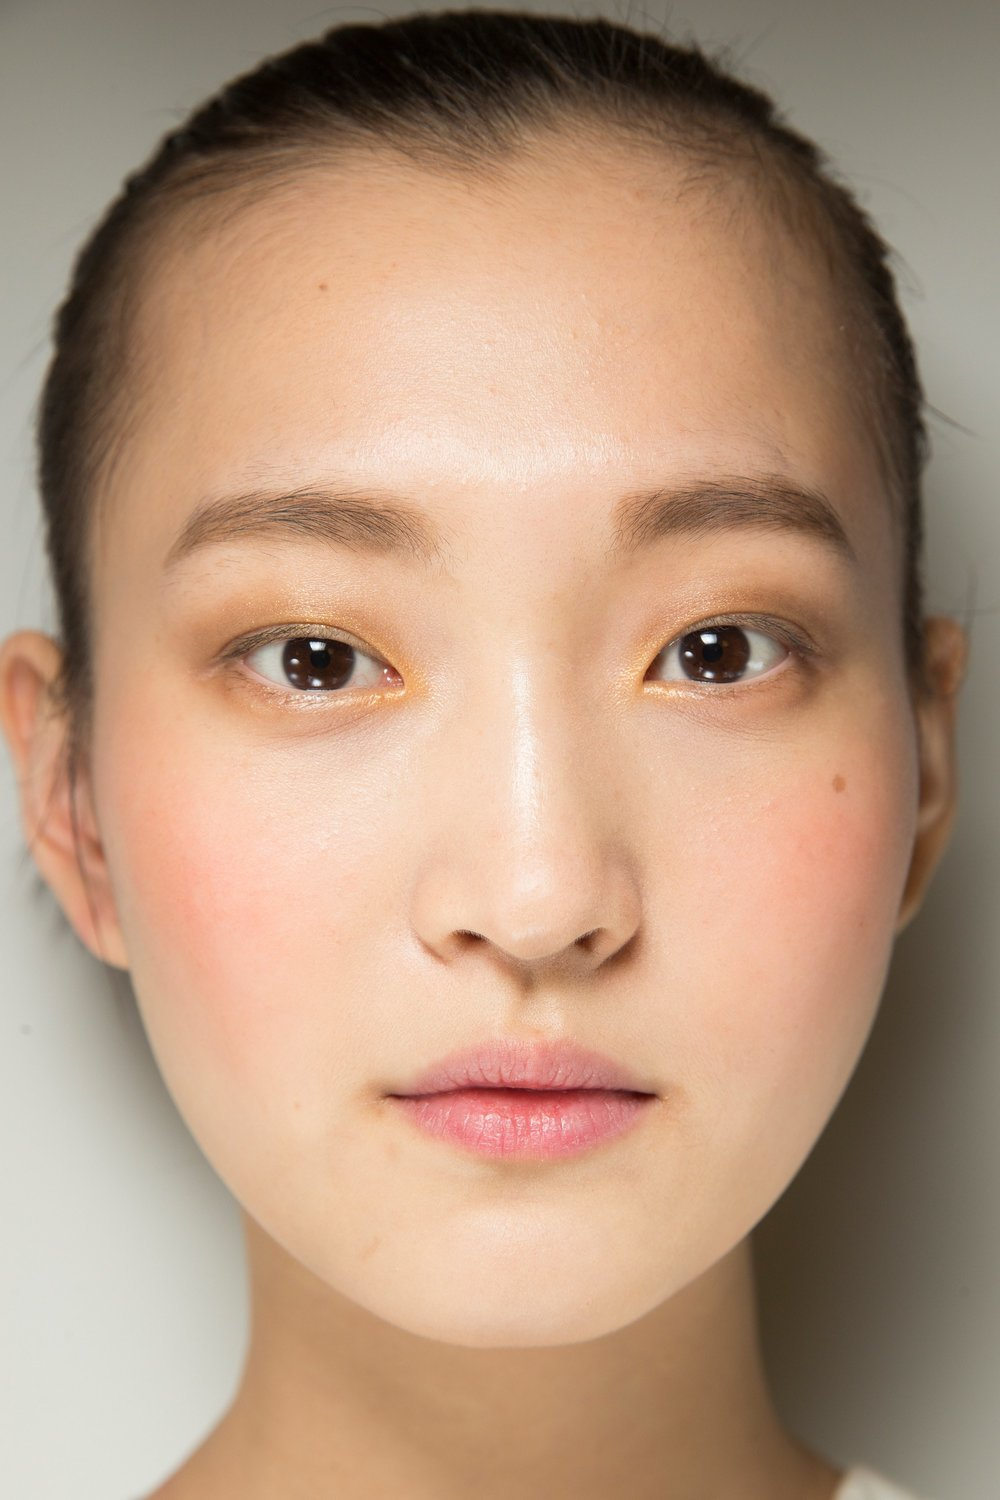 ROSE & IVY Journal eauty Flash | Flushed Cheeks at Prabal Gurung Fall 2018